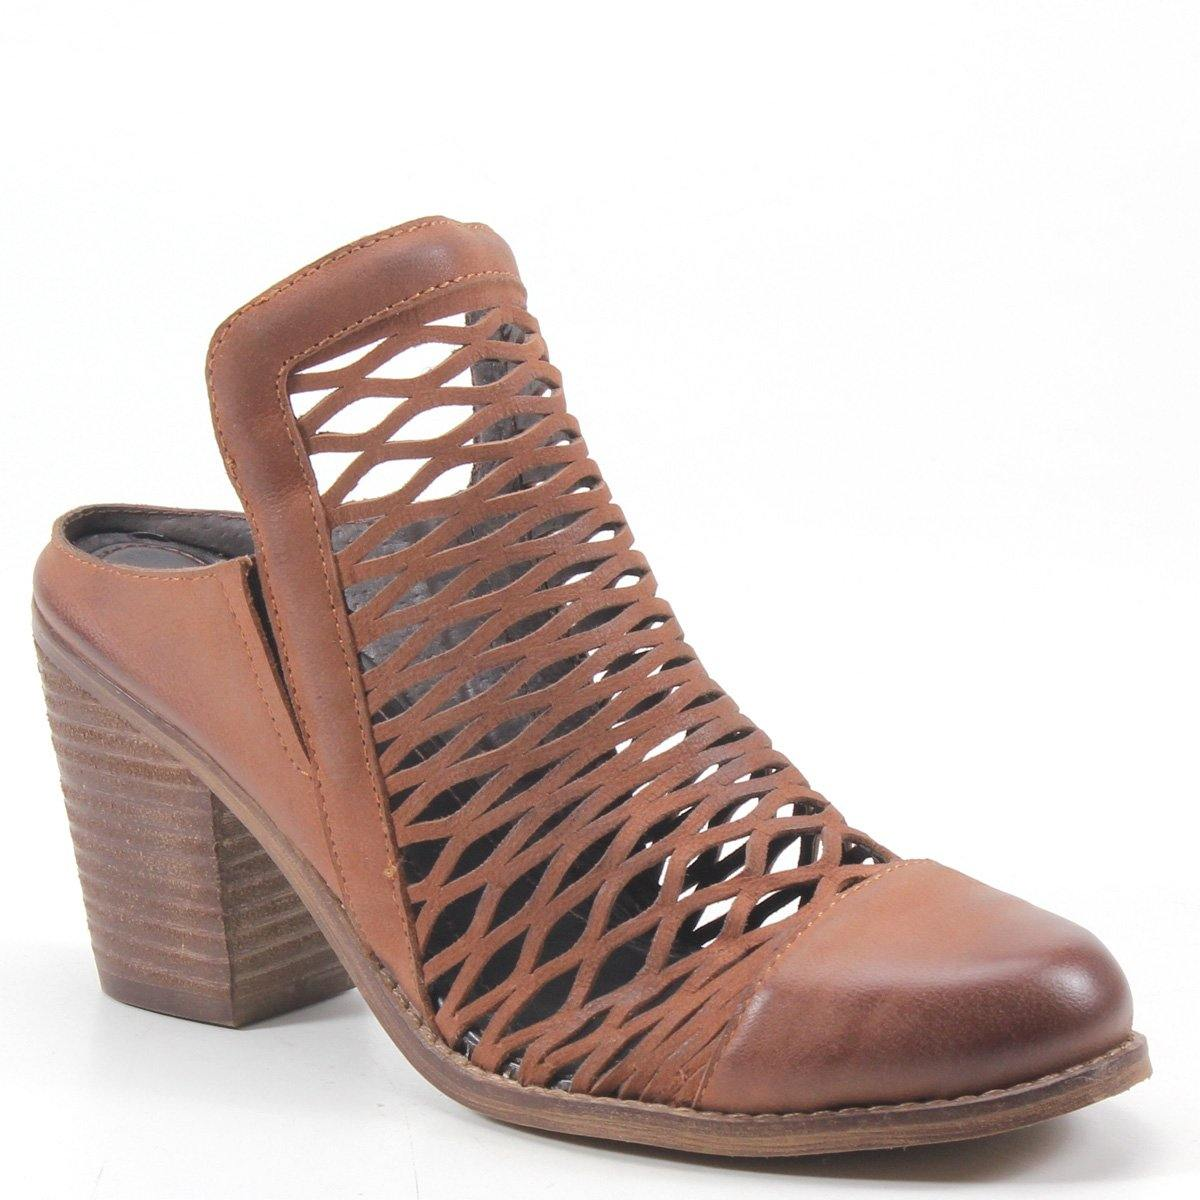 This stylish slip-on has an intricate cage cut out design that covers the leather upper of the silhouette. A cushioned insole, stacked heel, and round covered toe that will take your casual looks to new heights.